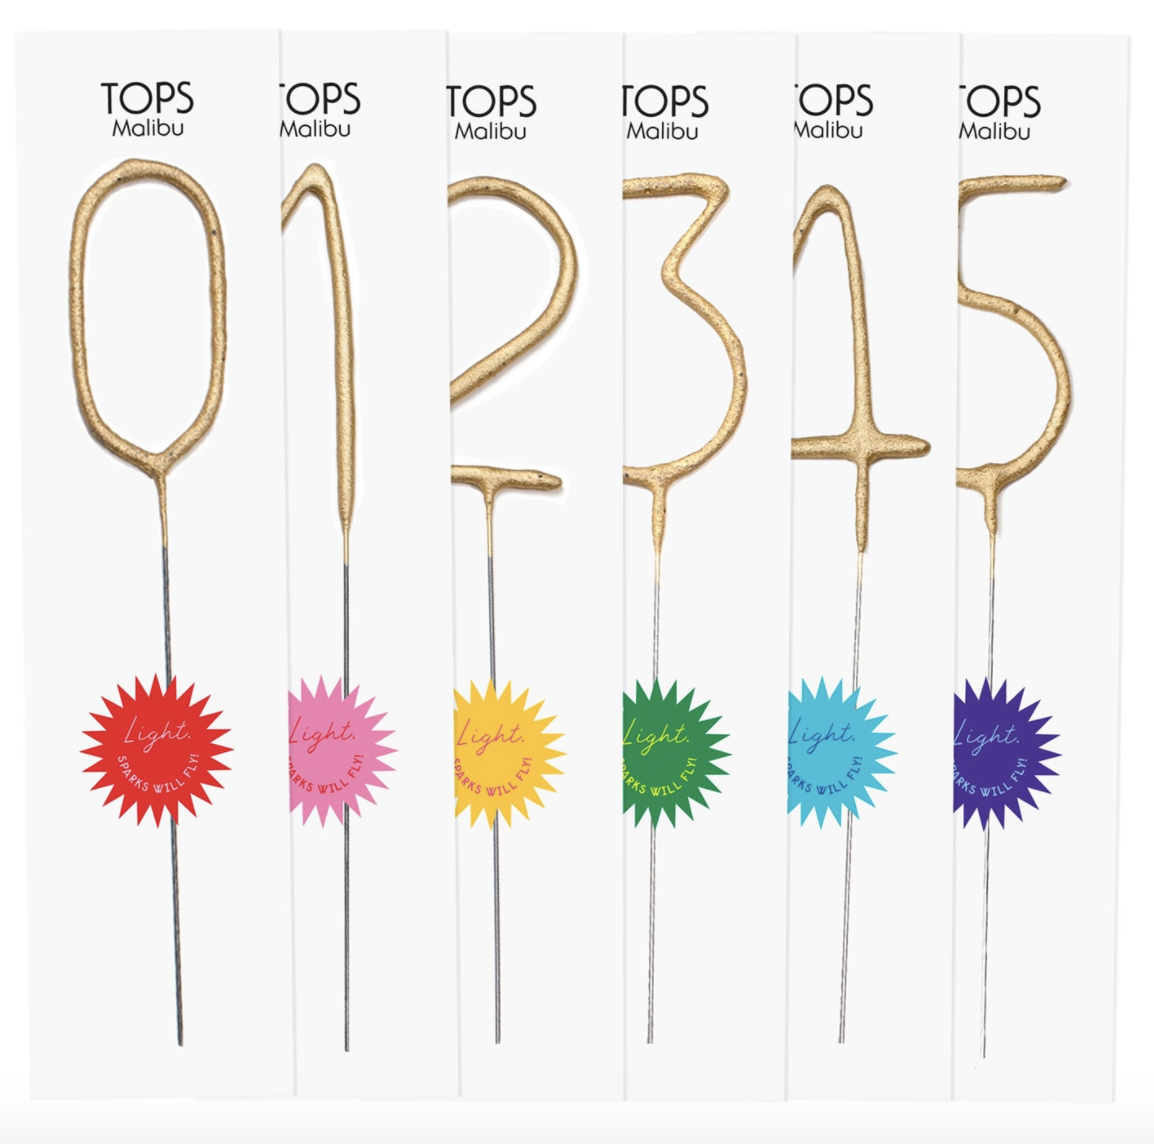 TOPS Malibu: Number Candles